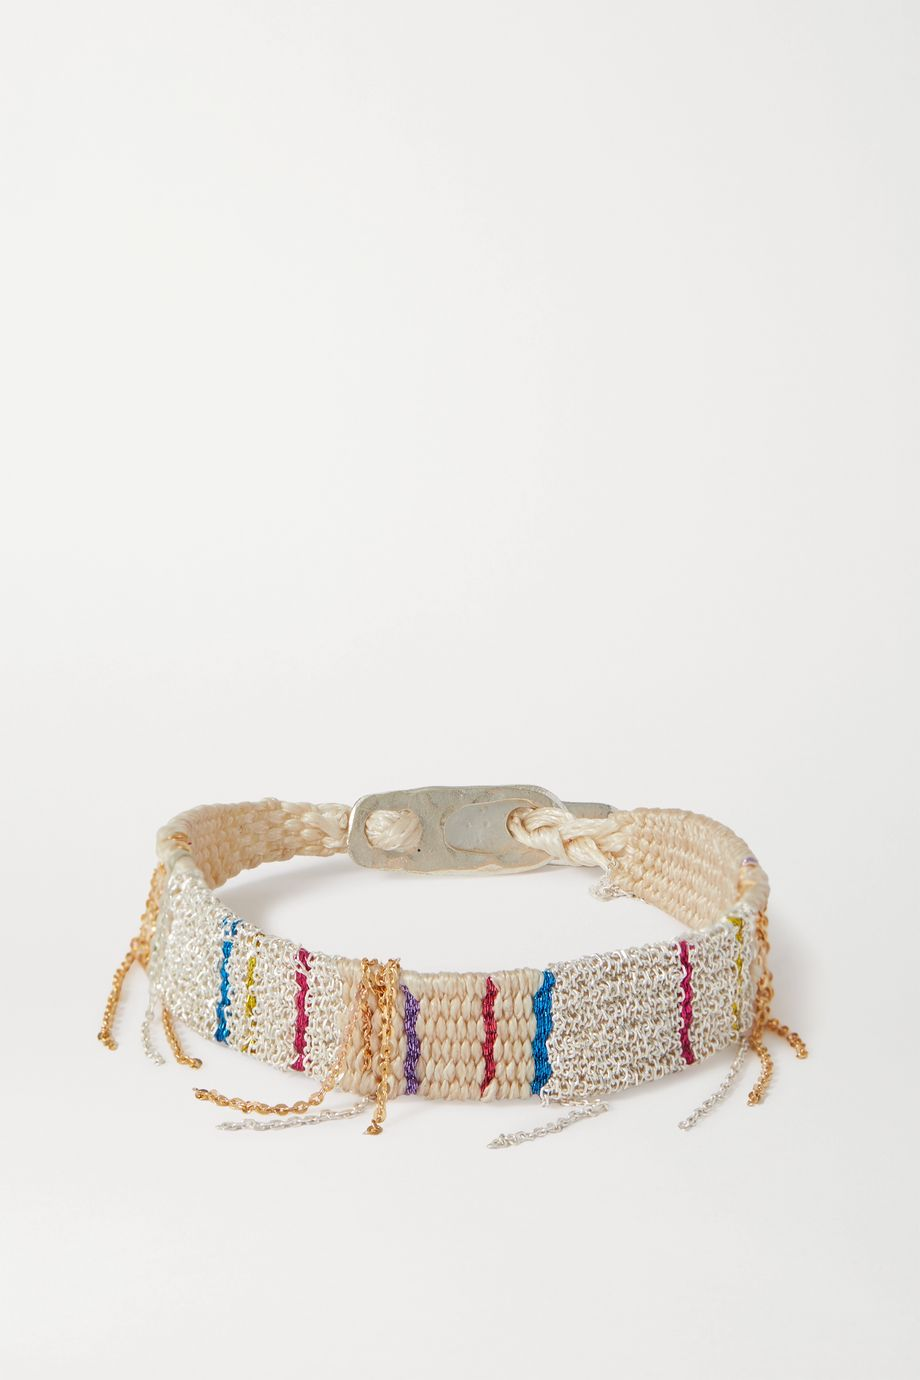 Katia Alpha Woven cord, gold vermeil and silver bracelet